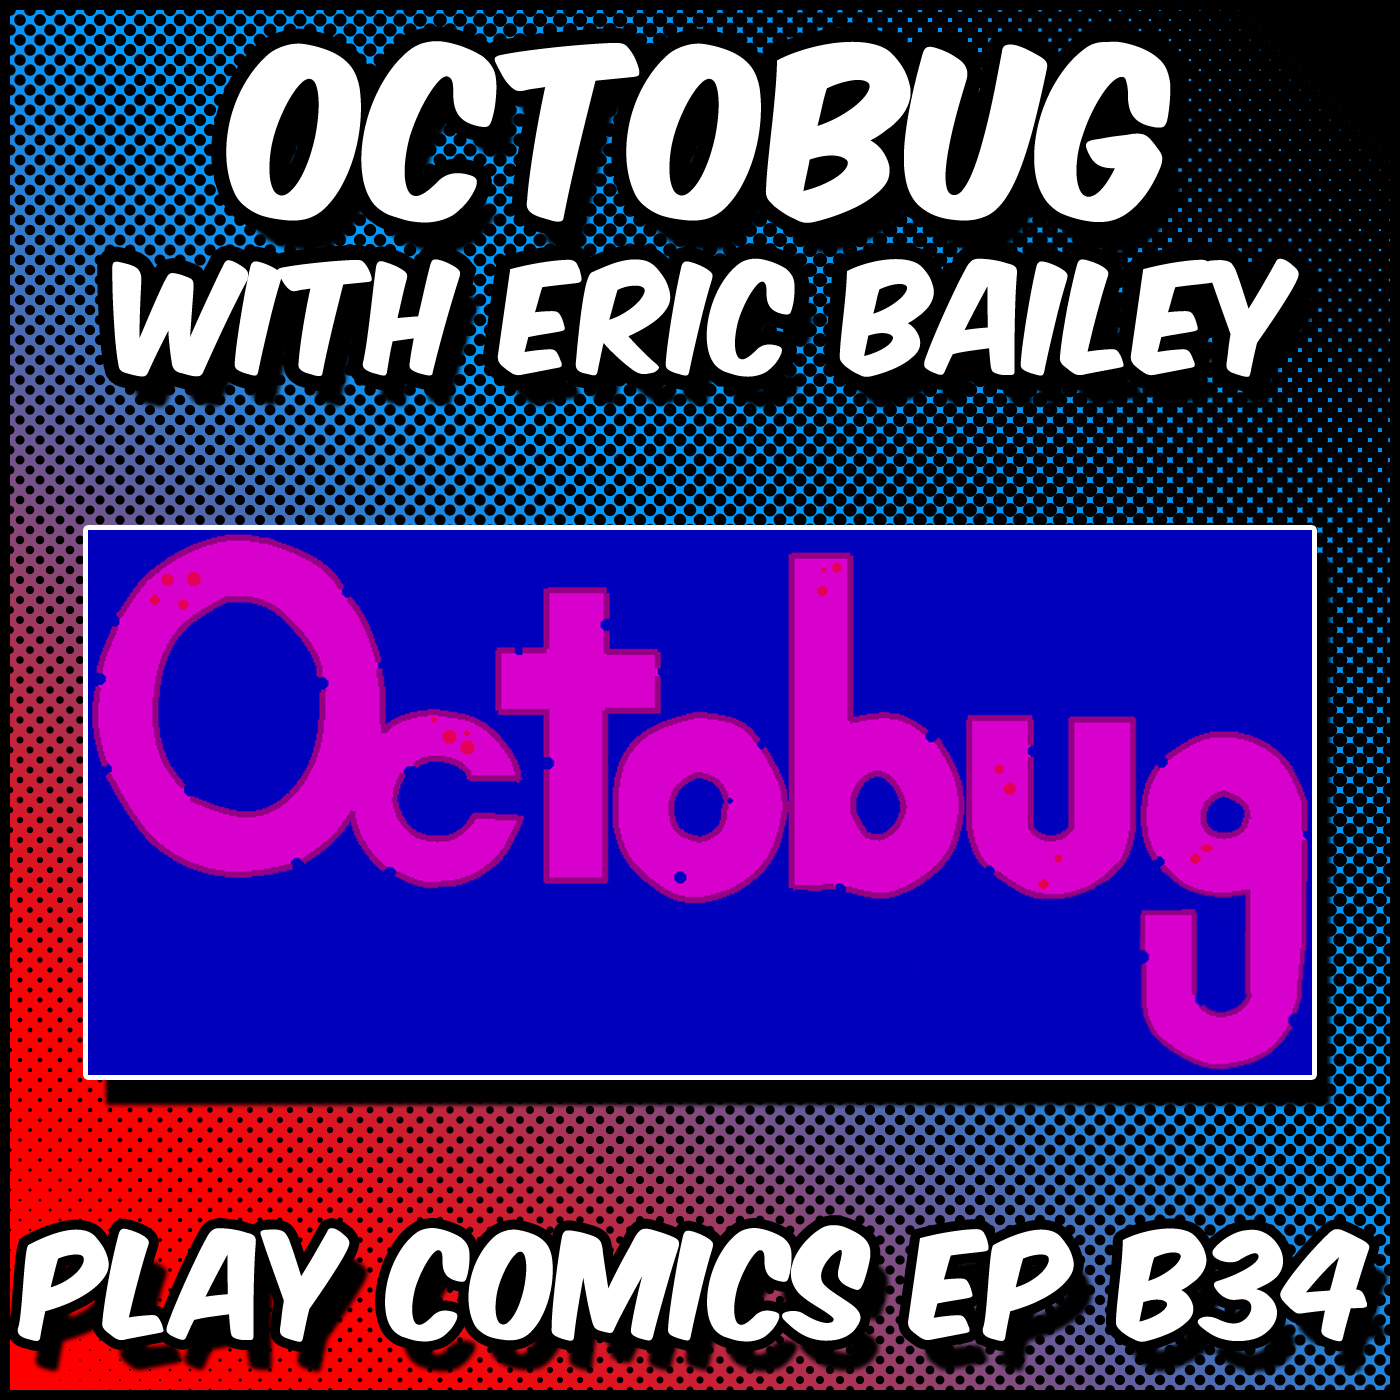 Octobug with Eric Bailey (Tiny Bookshelf)